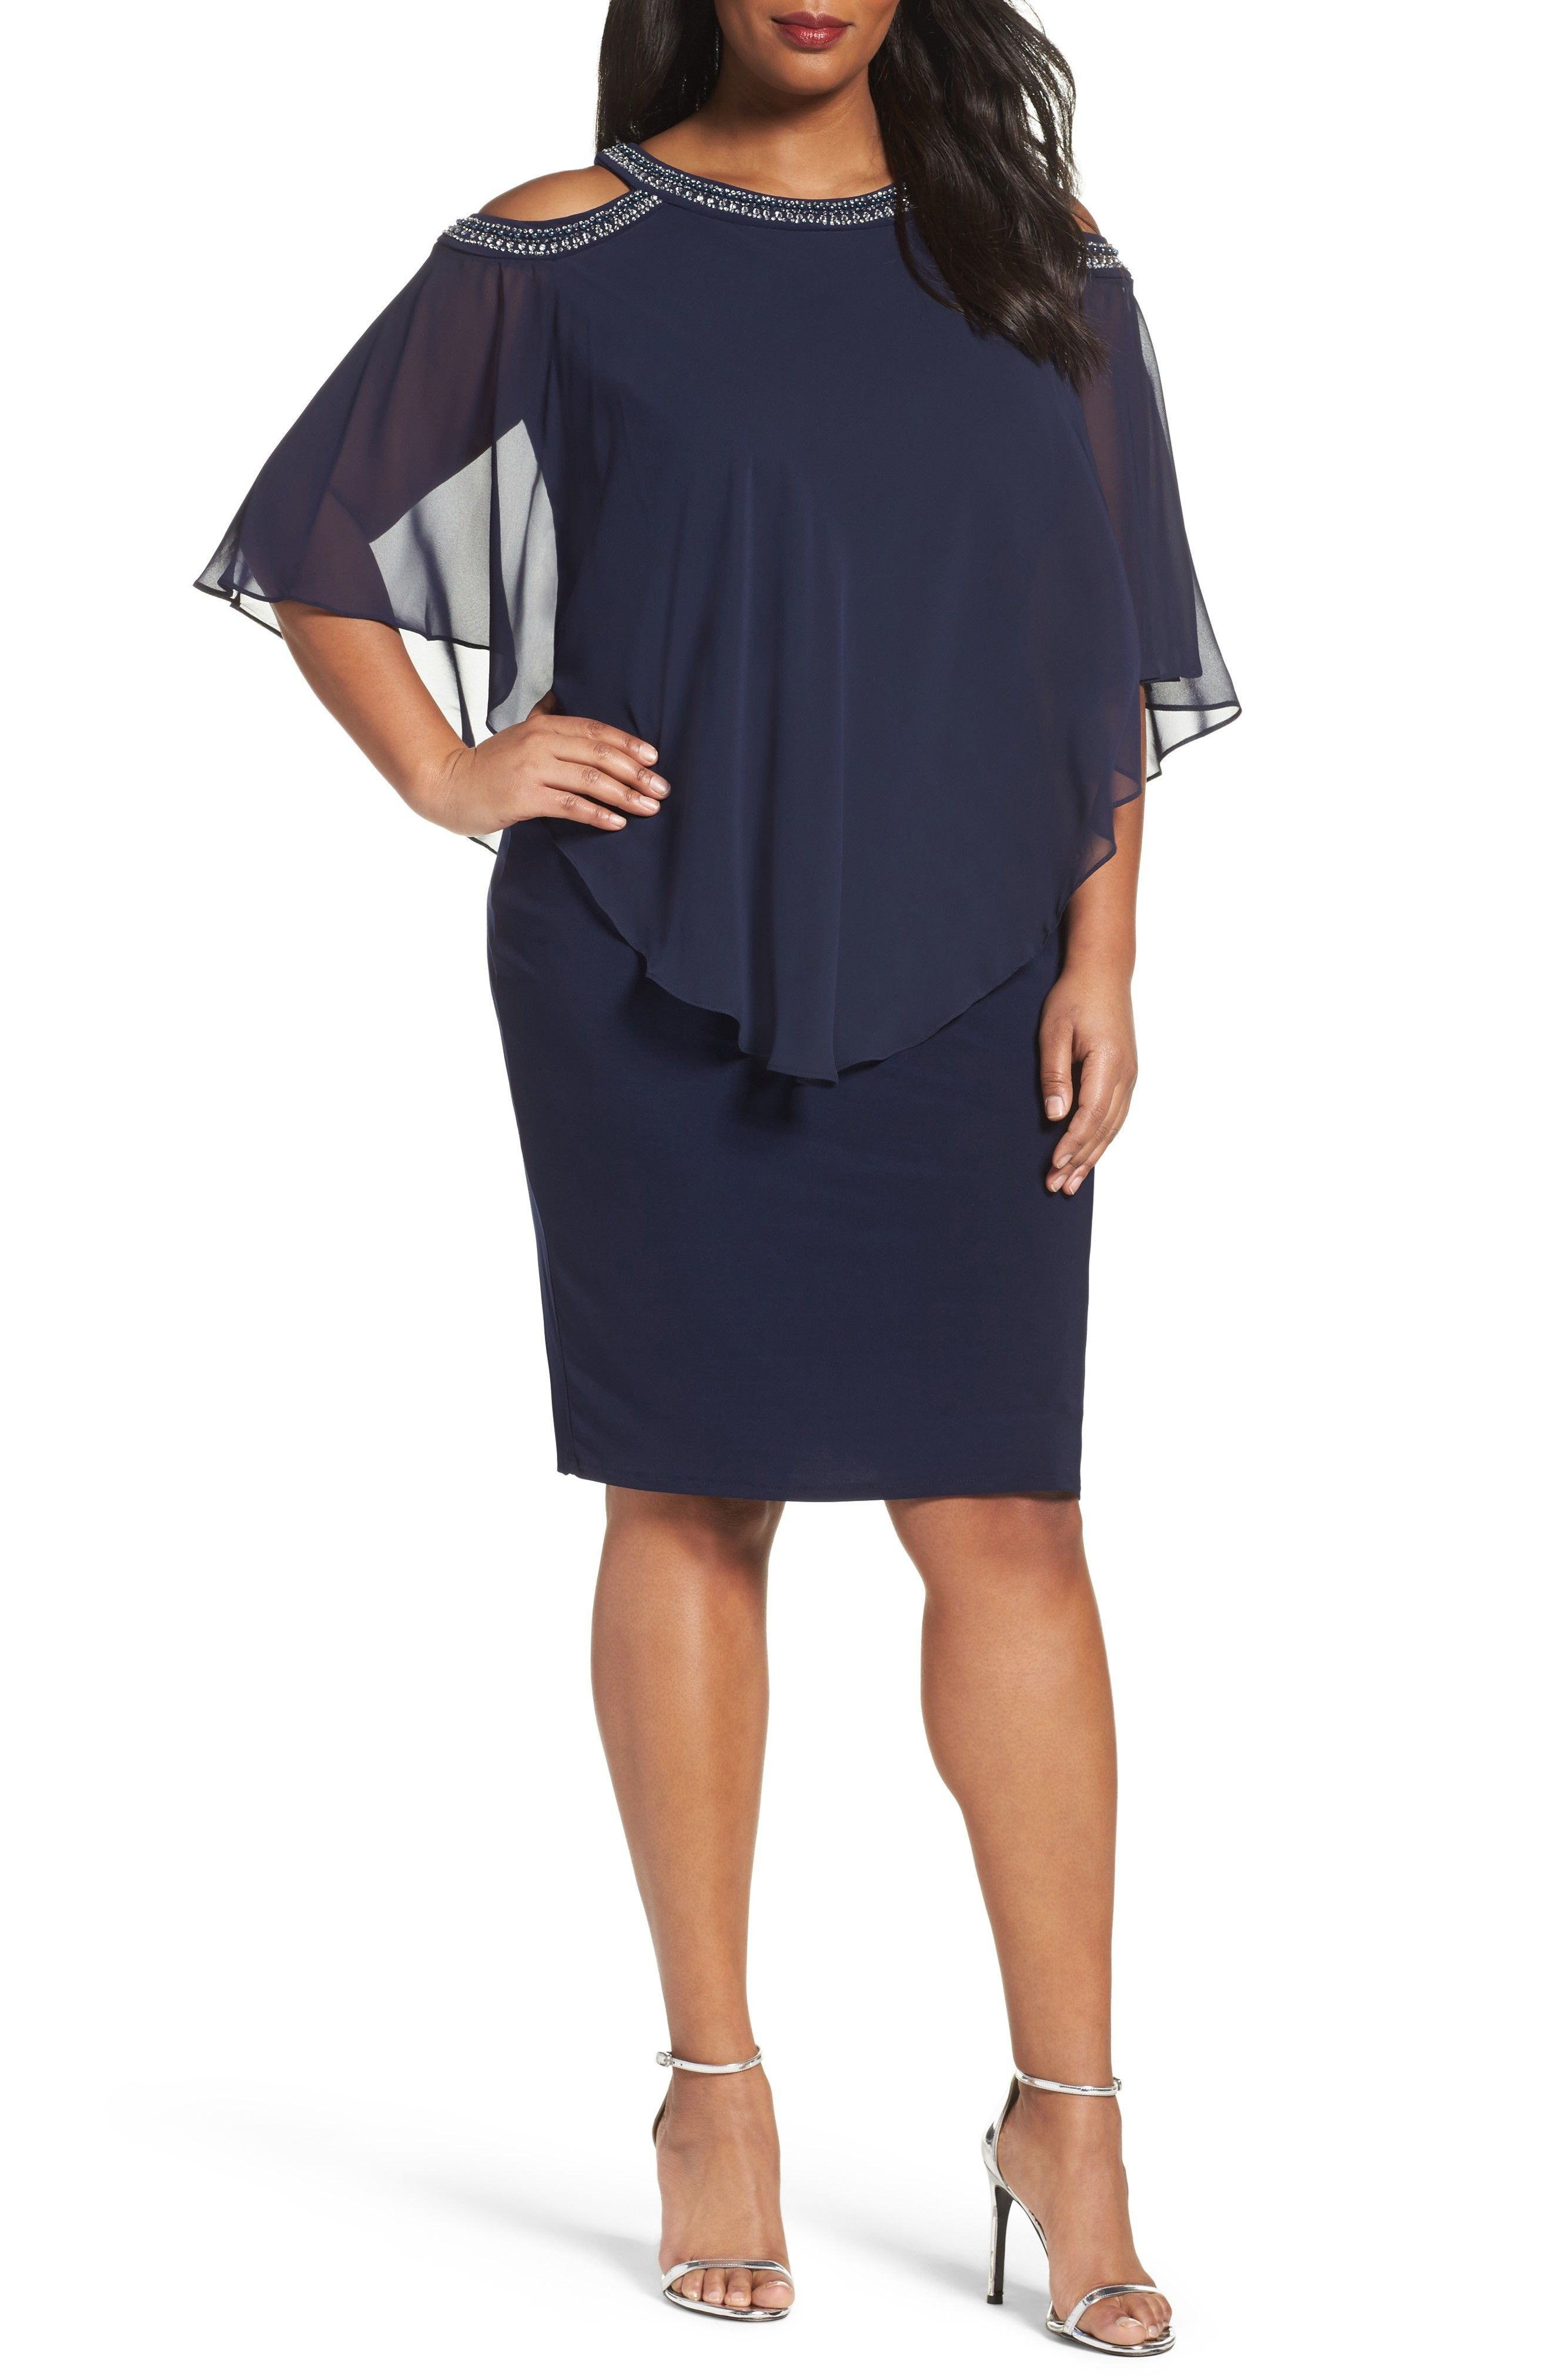 How To Hide Your Belly With Fabulous Clothes No Need To Let Everyone Know You Have A Tummy Plus Size Cocktail Dresses Navy Cocktail Dress Plus Size Dresses